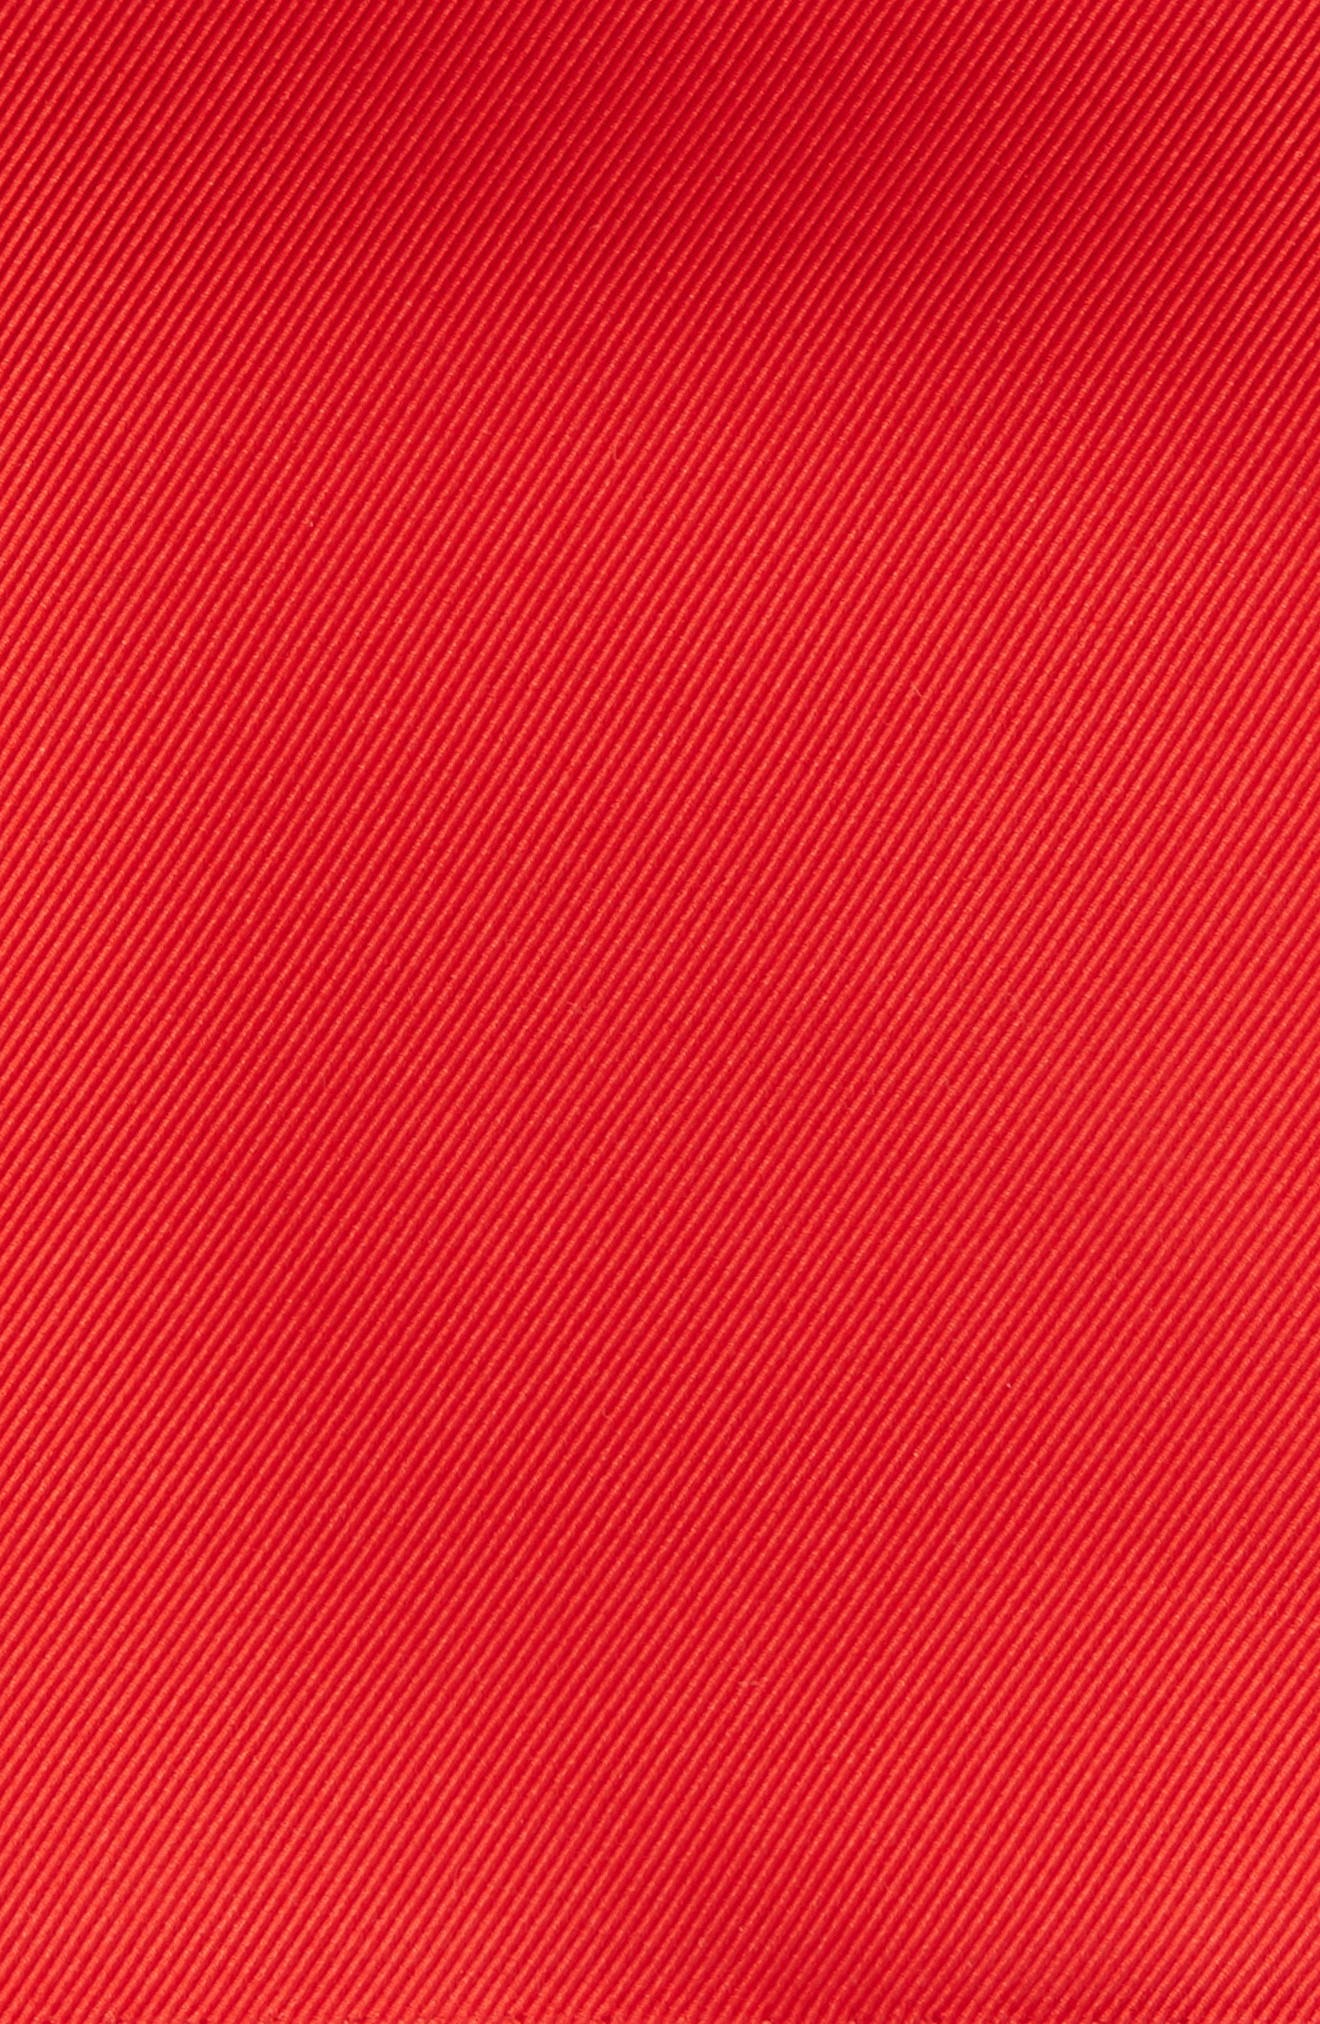 King Twill Silk Pocket Square,                             Alternate thumbnail 3, color,                             Red